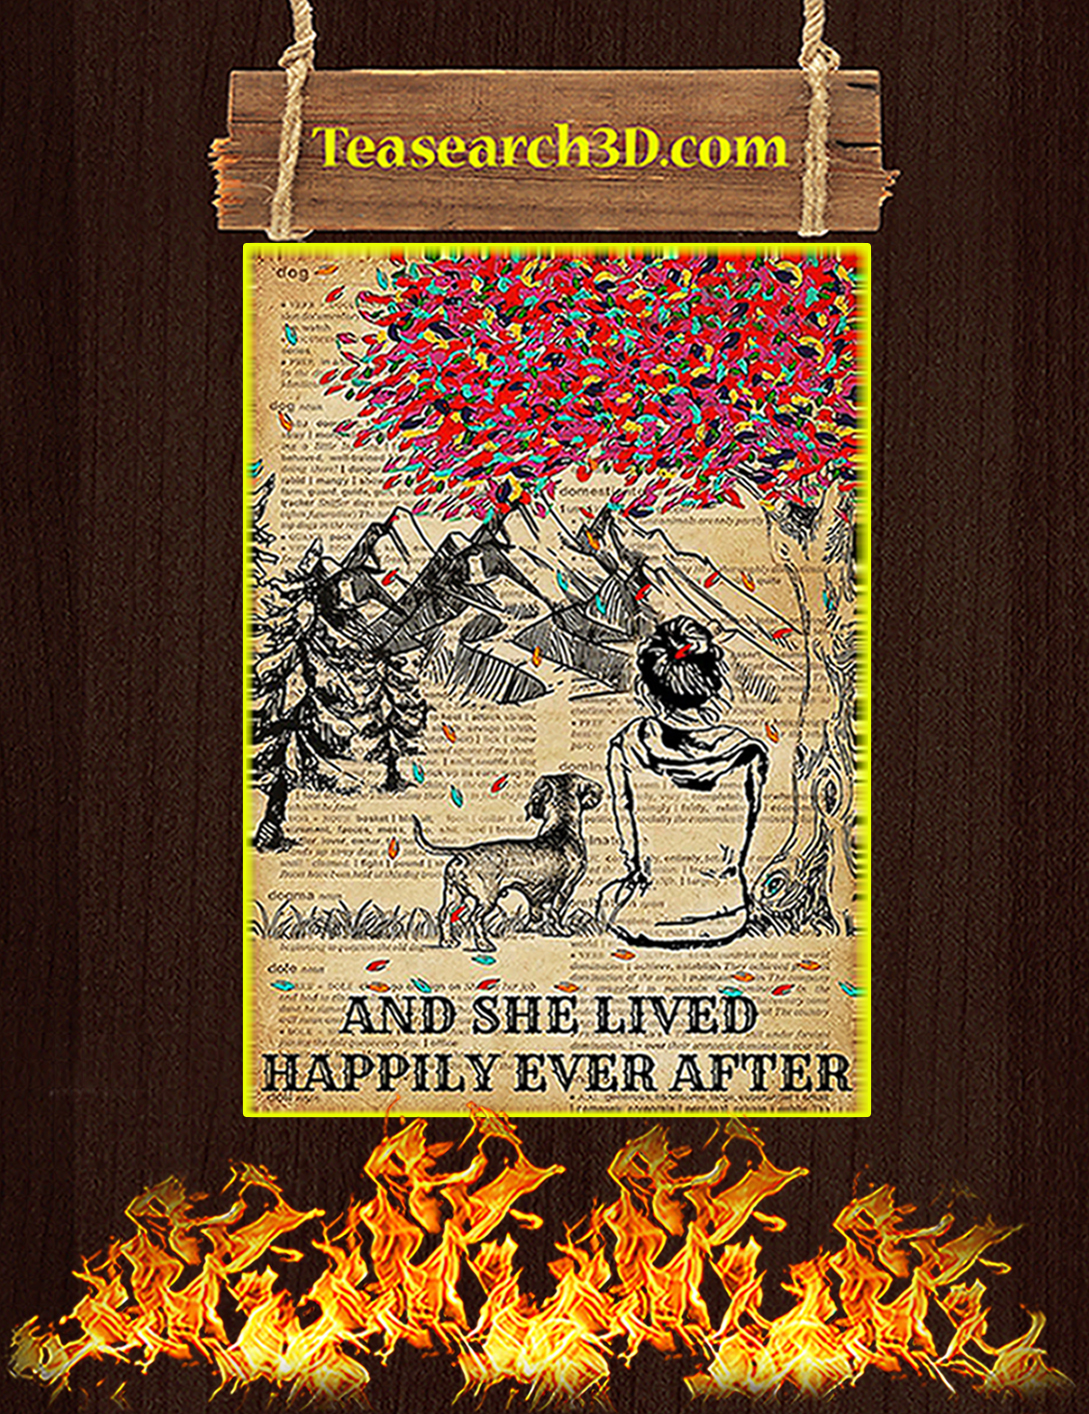 Dictionary dachshund and she lived happily ever after poster A2